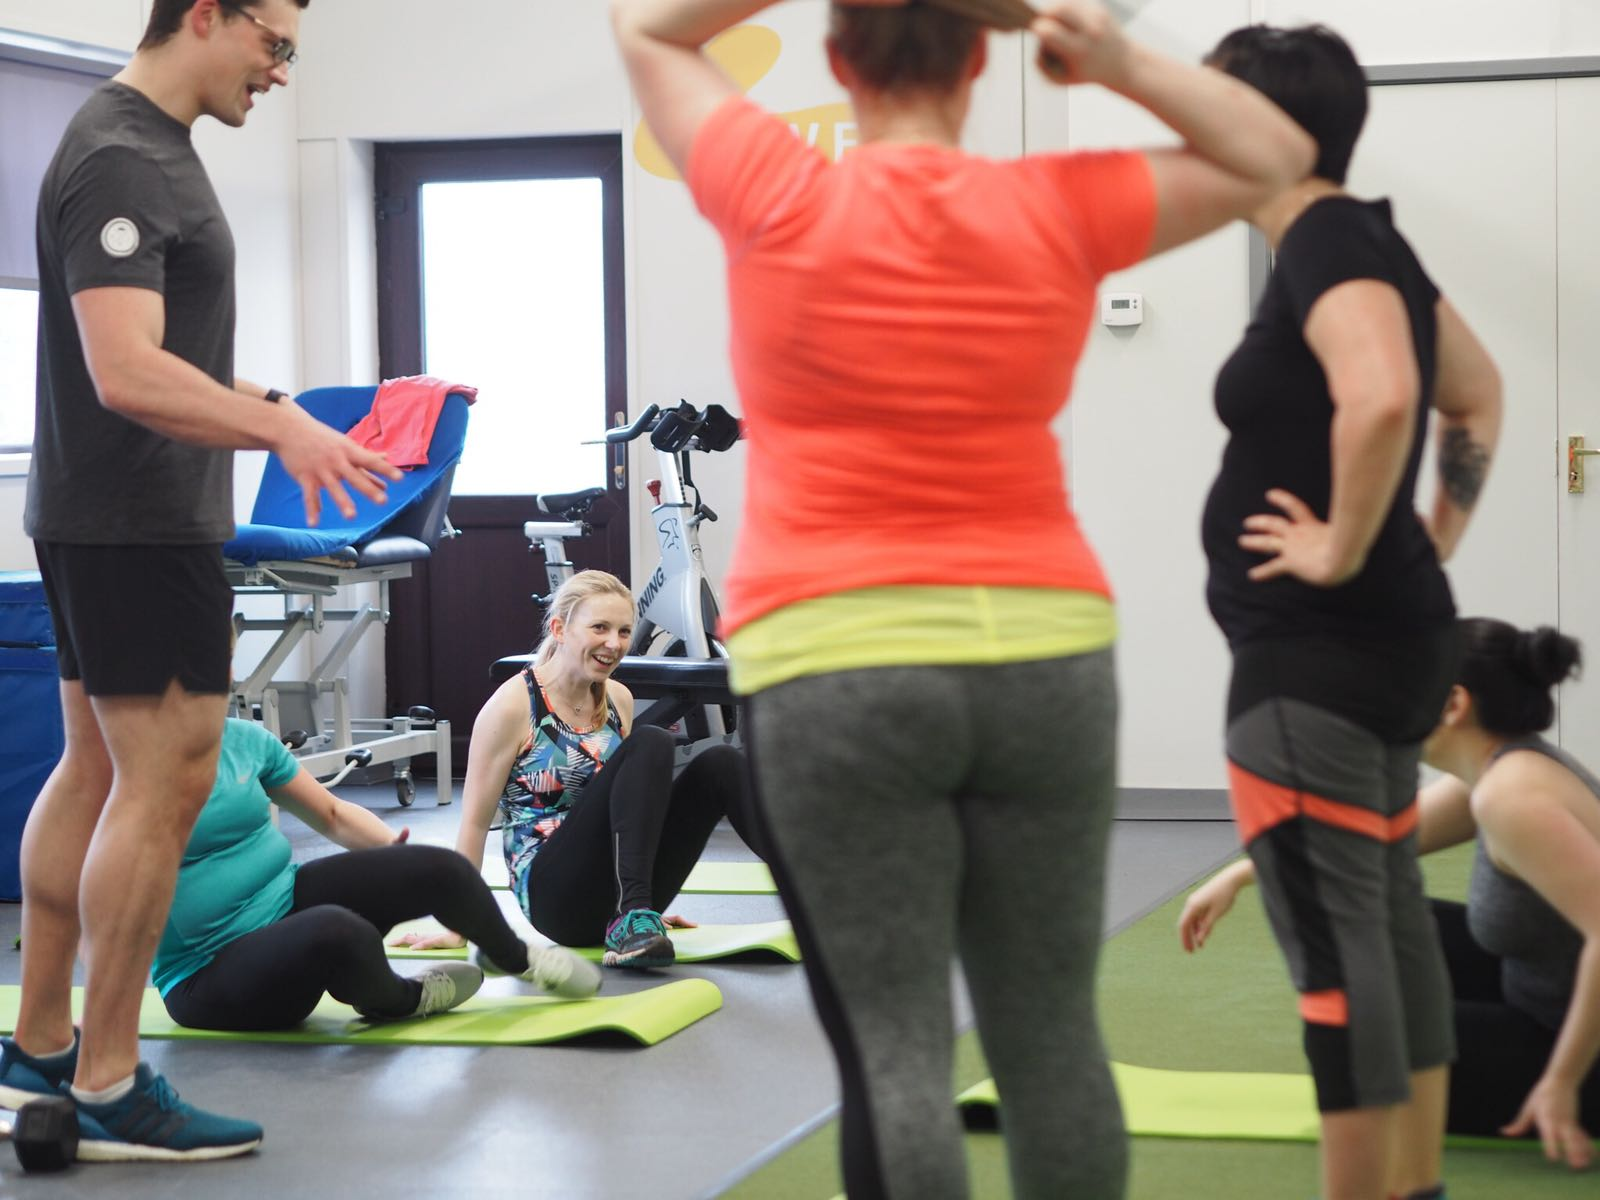 Move4 Physiotherapy Northampton, Eros 1 and The Mum Club fit club Northampton. Fitness and exercise classes for new mums, improving health and wellbeing